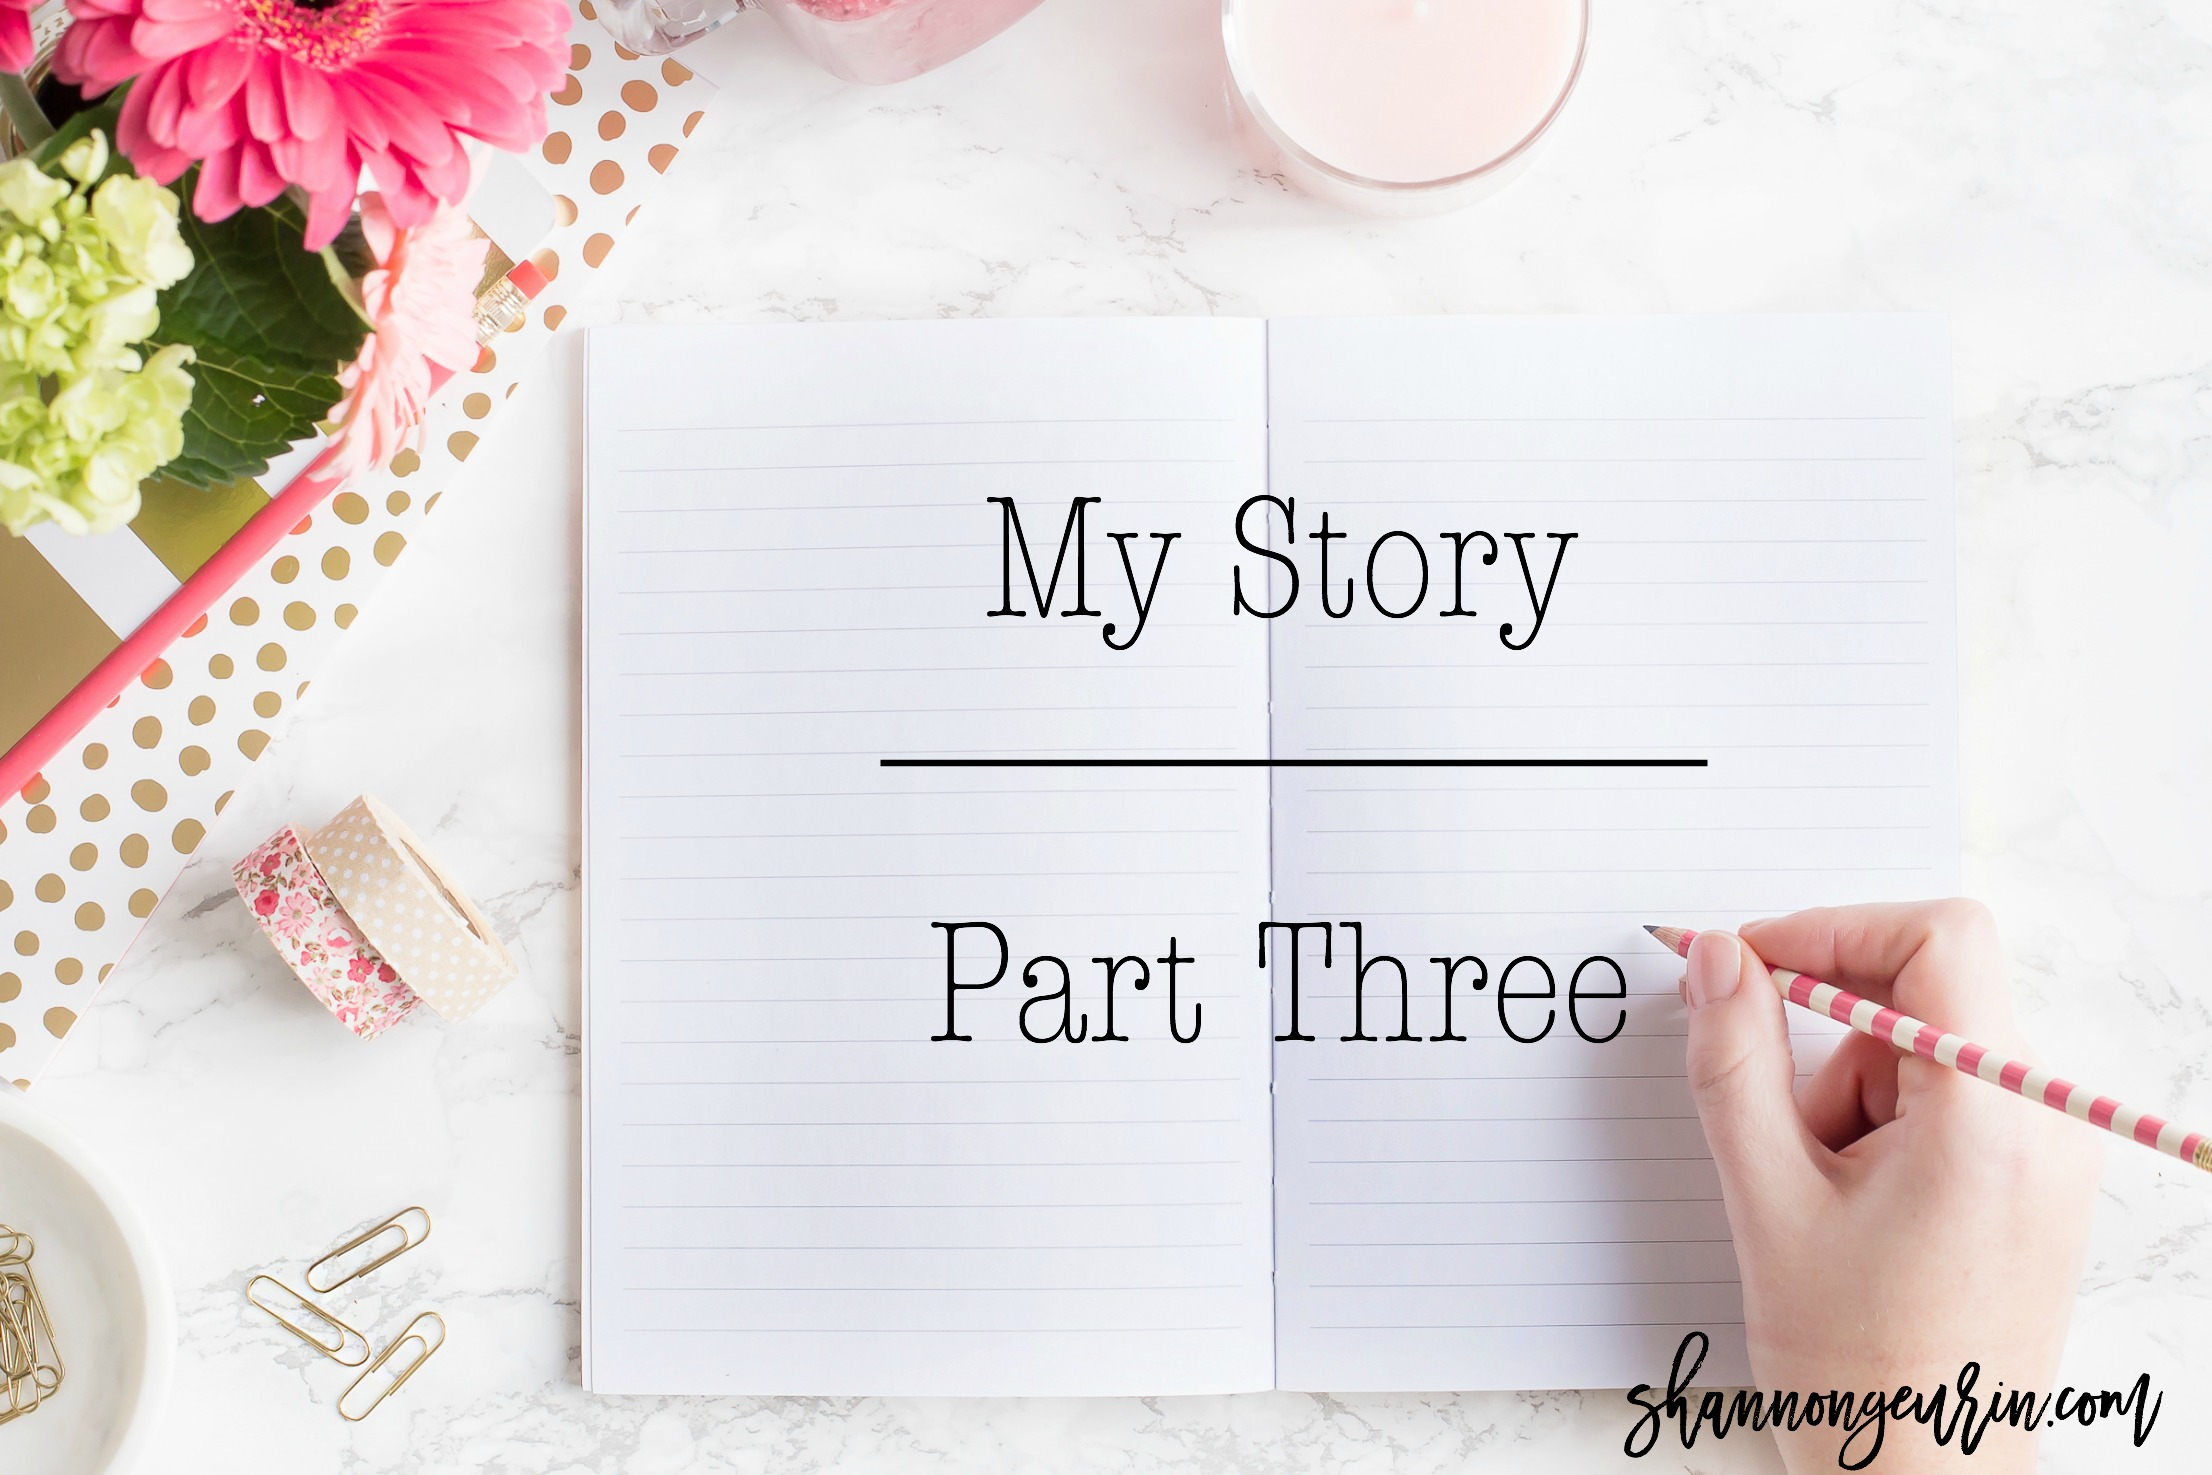 Please read my edited beginning to my story please?